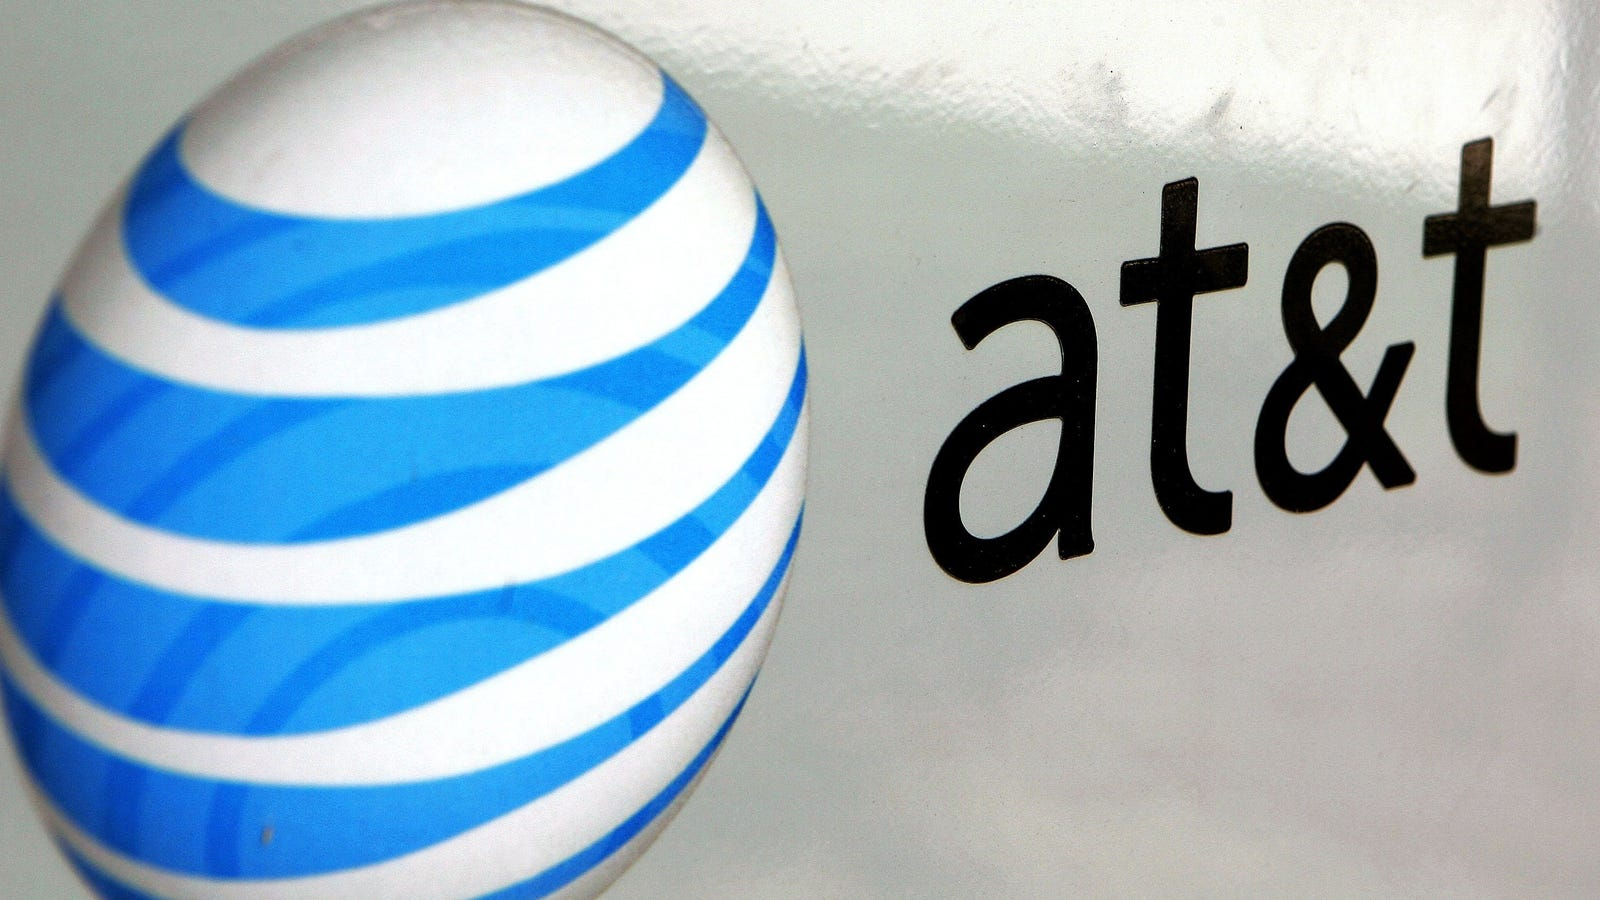 AT&T Has to Pay Up Millions After Two Major 911 Outages Last Year